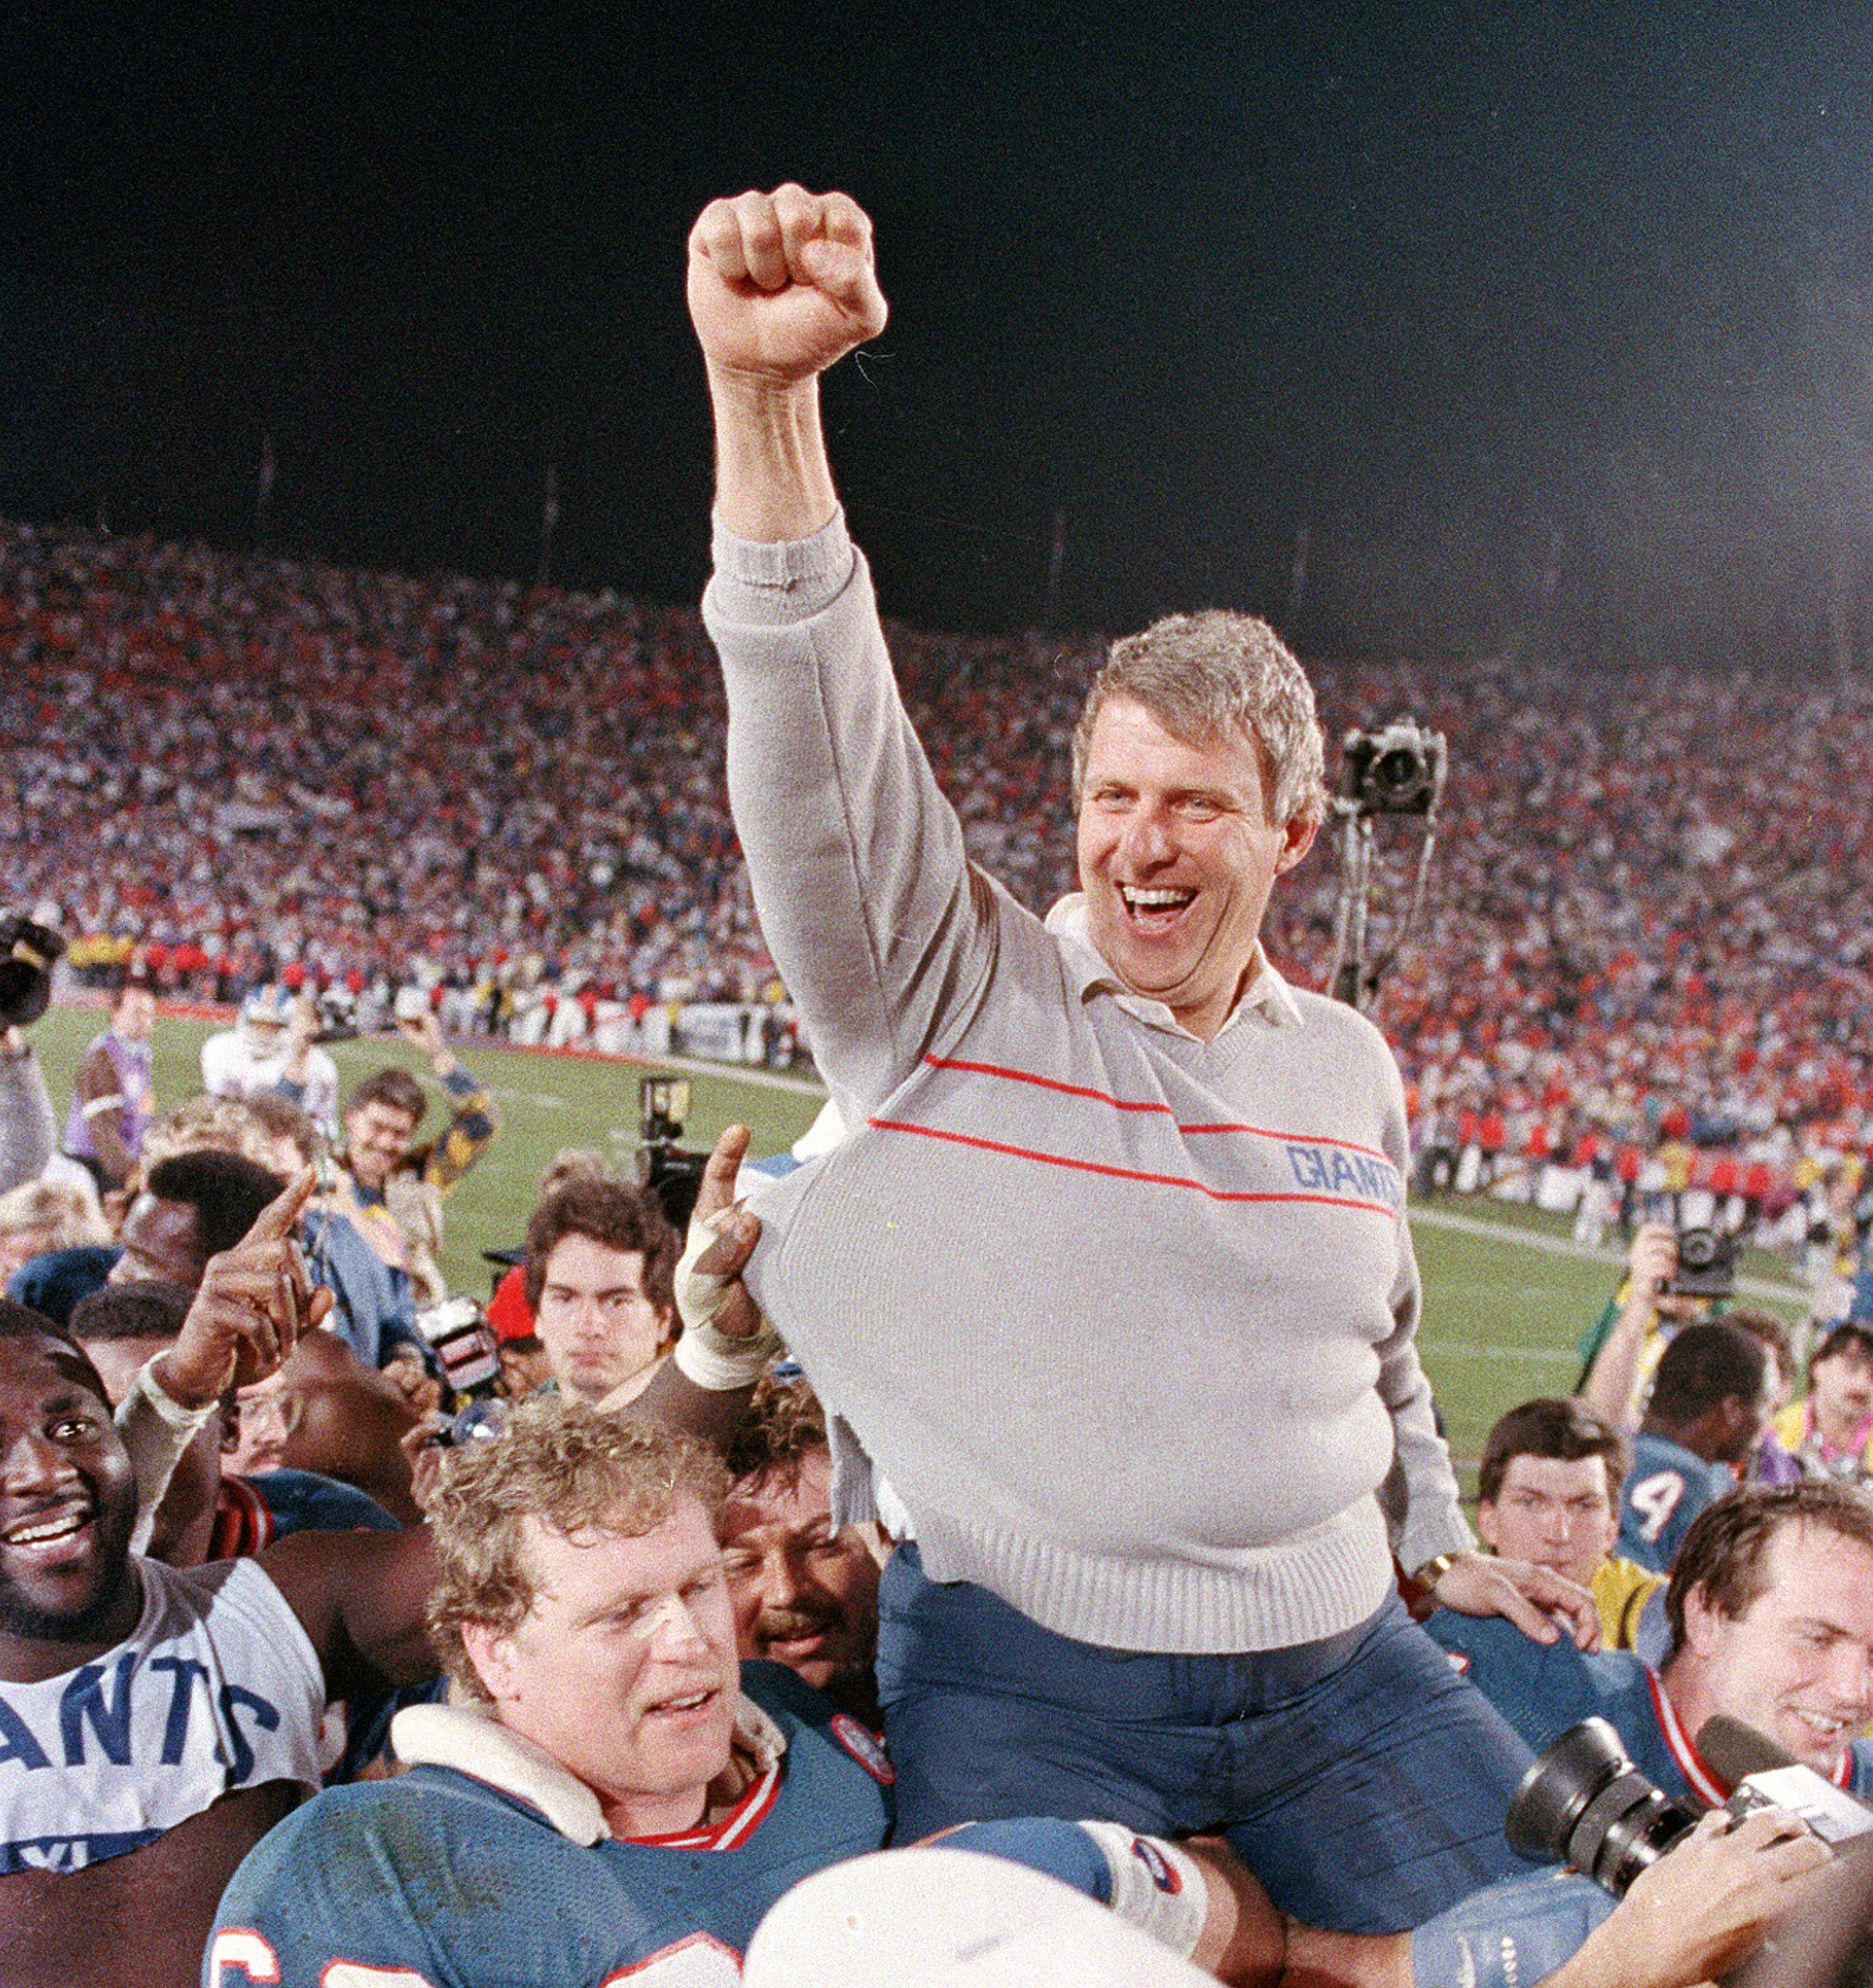 For the troubled NFL, it's a good thing Bill Parcells is out of coaching